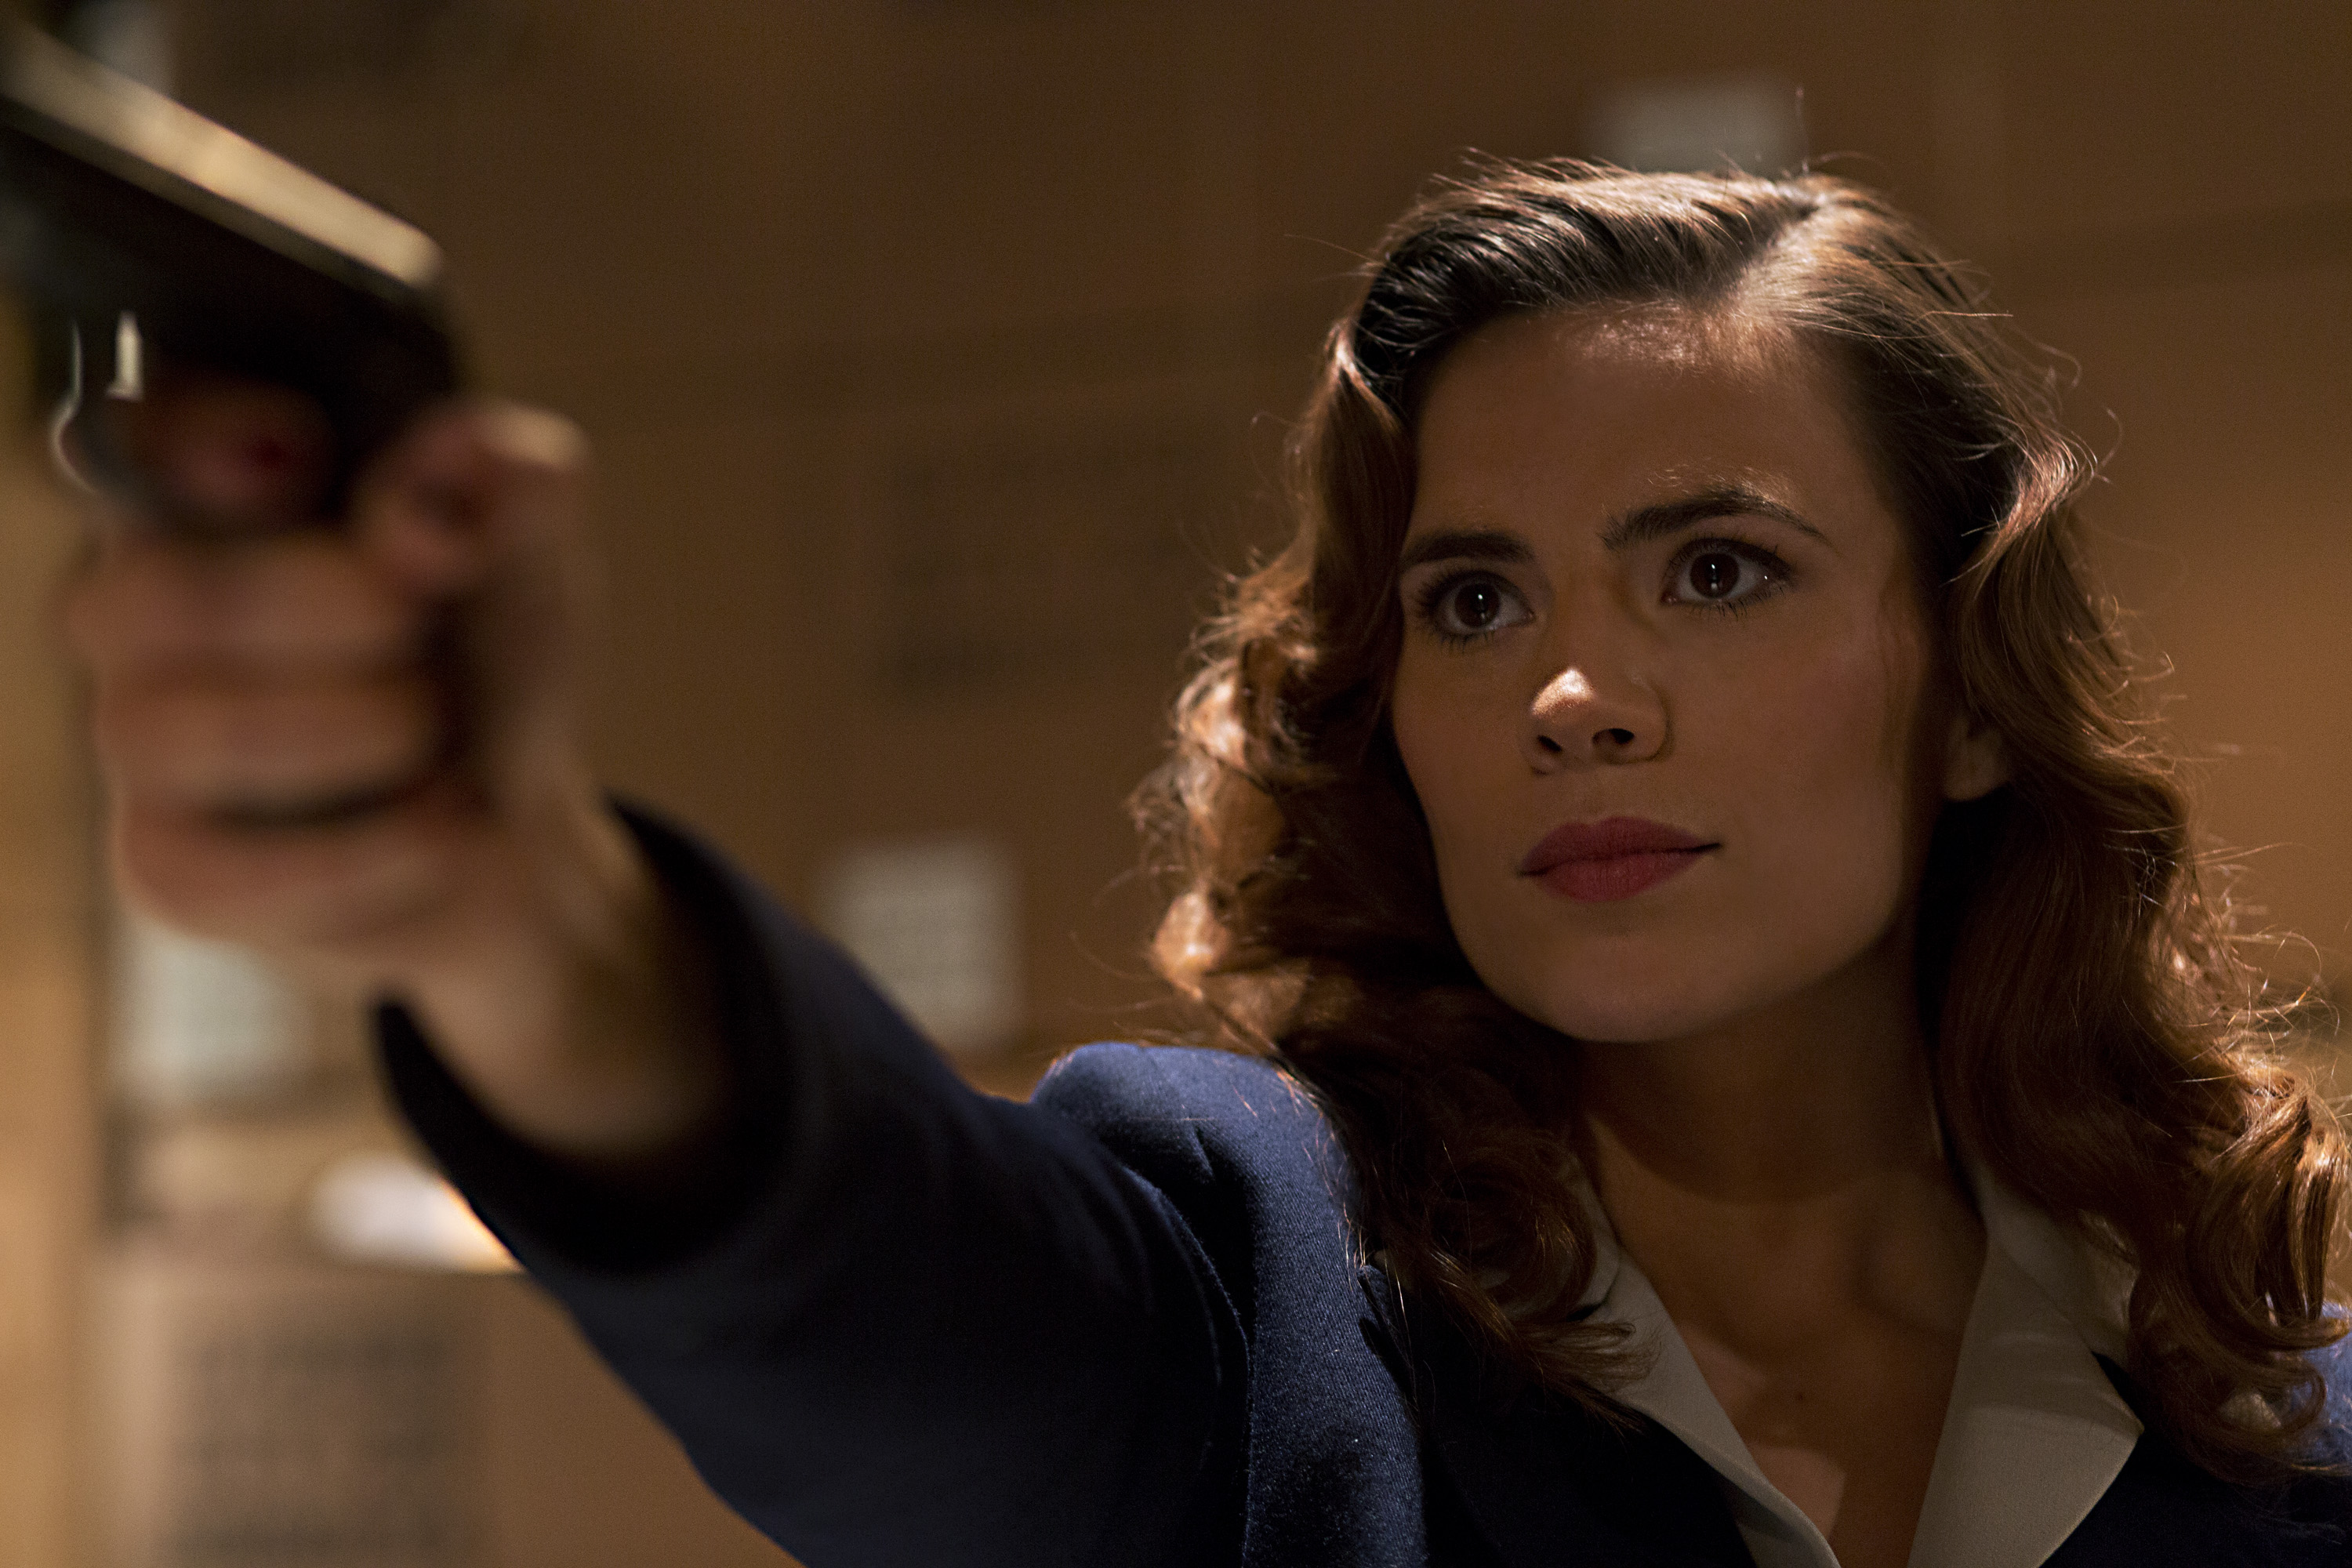 'Marvel's Agents of SHIELD' gets a second season, 'Agent Carter' coming to ABC